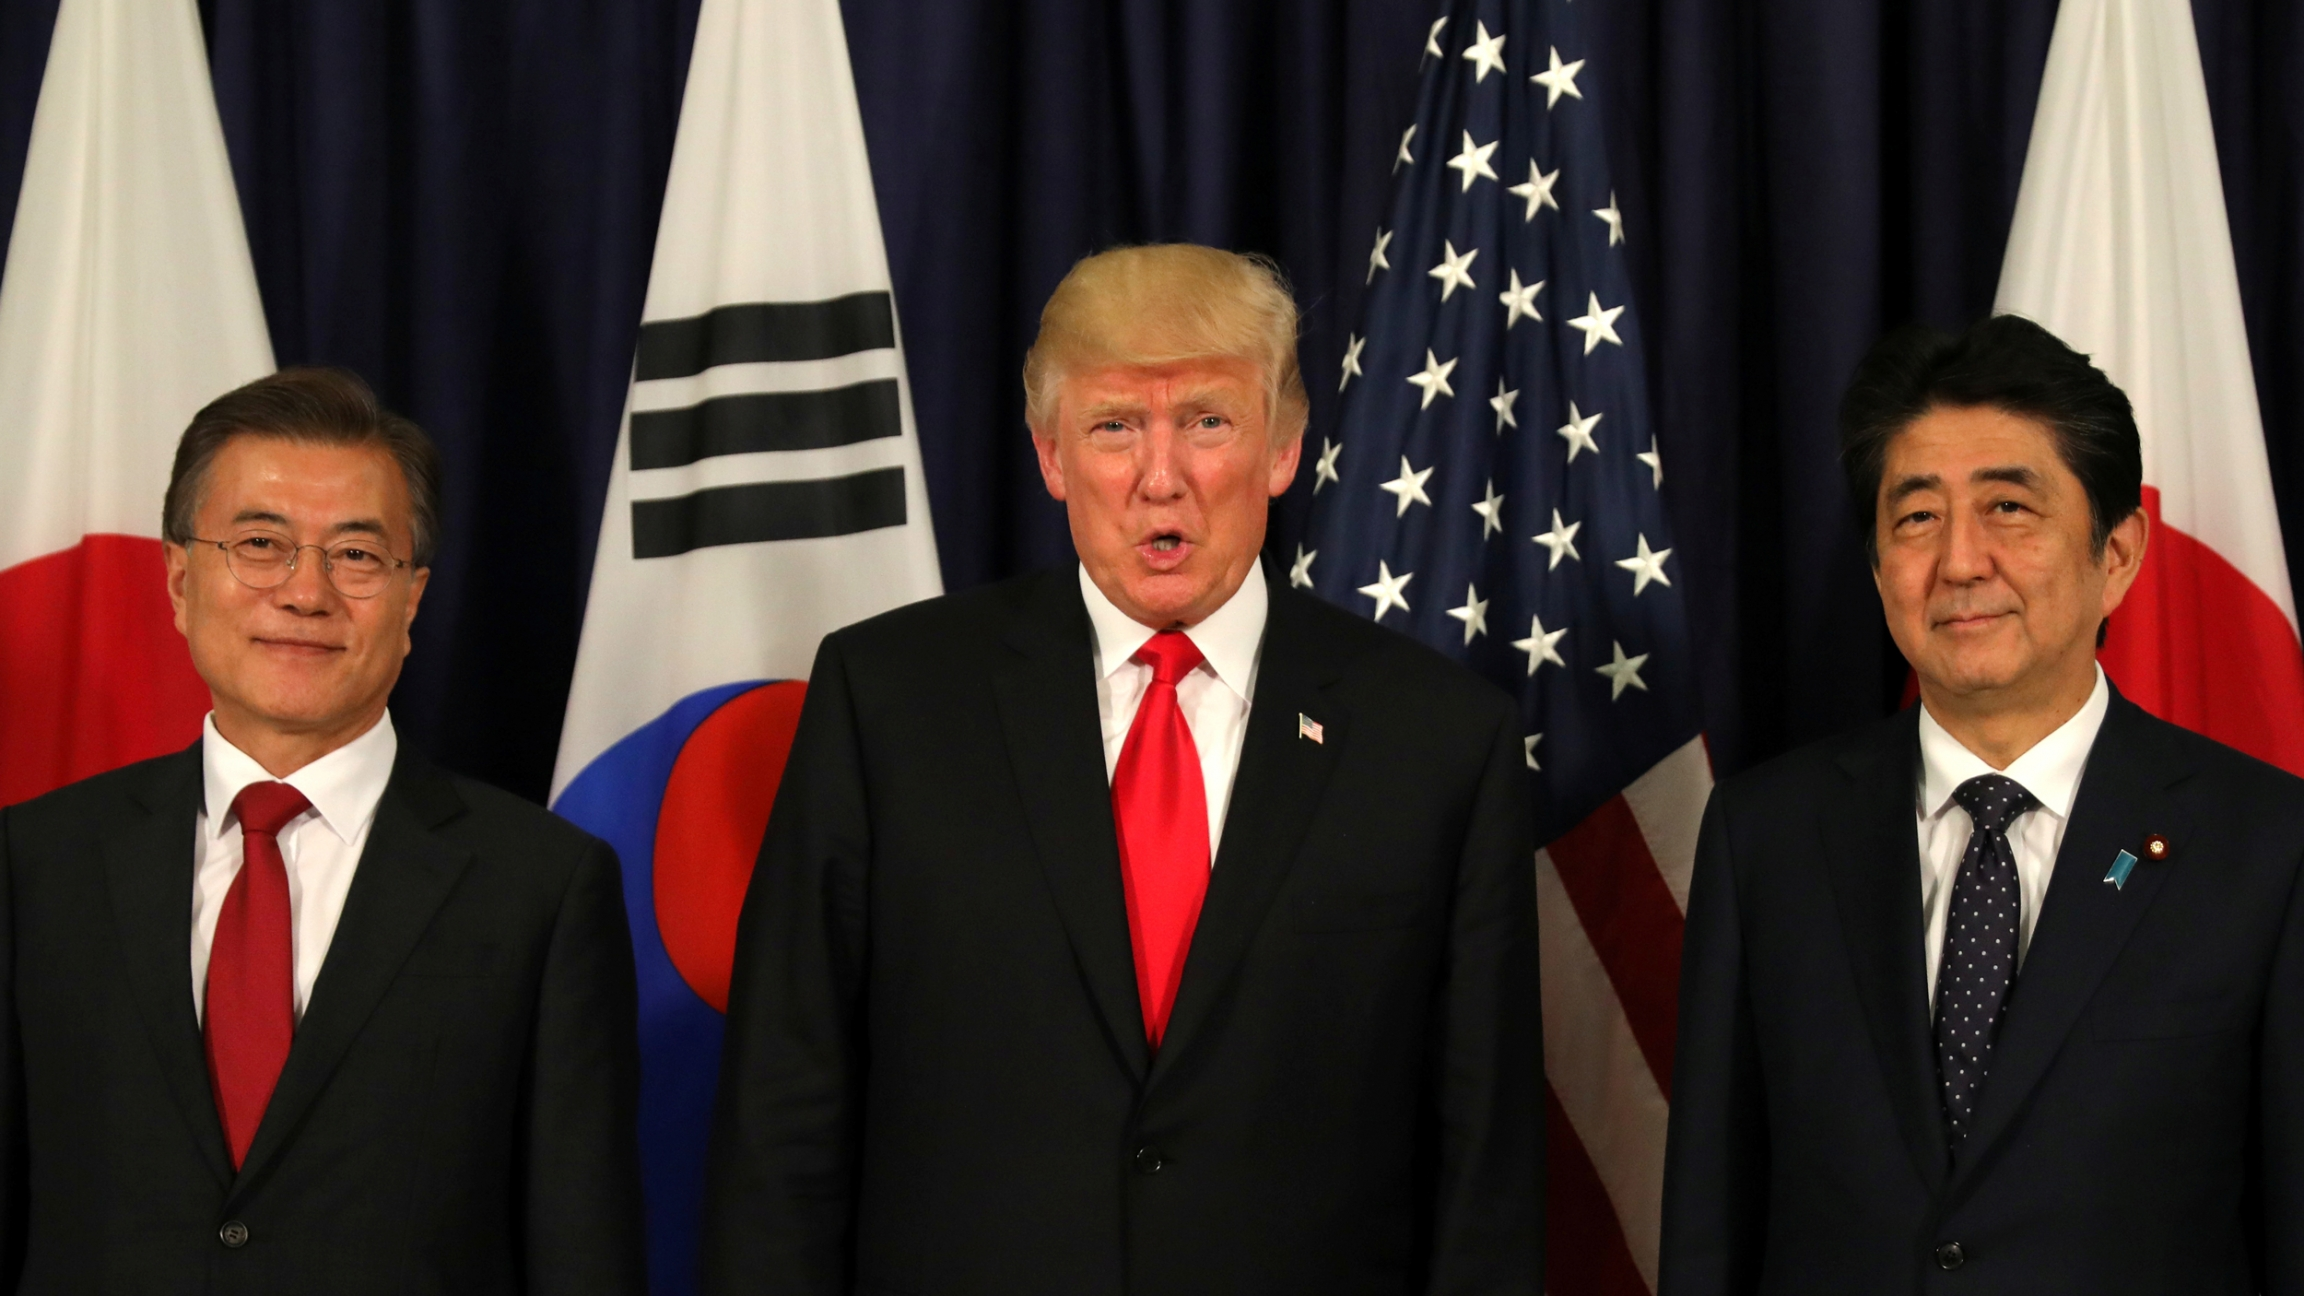 South Korean President Moon Jae-in, US President Donald Trump and Japanese Shinzō Abe stand in a line with flags form their countries behind them.